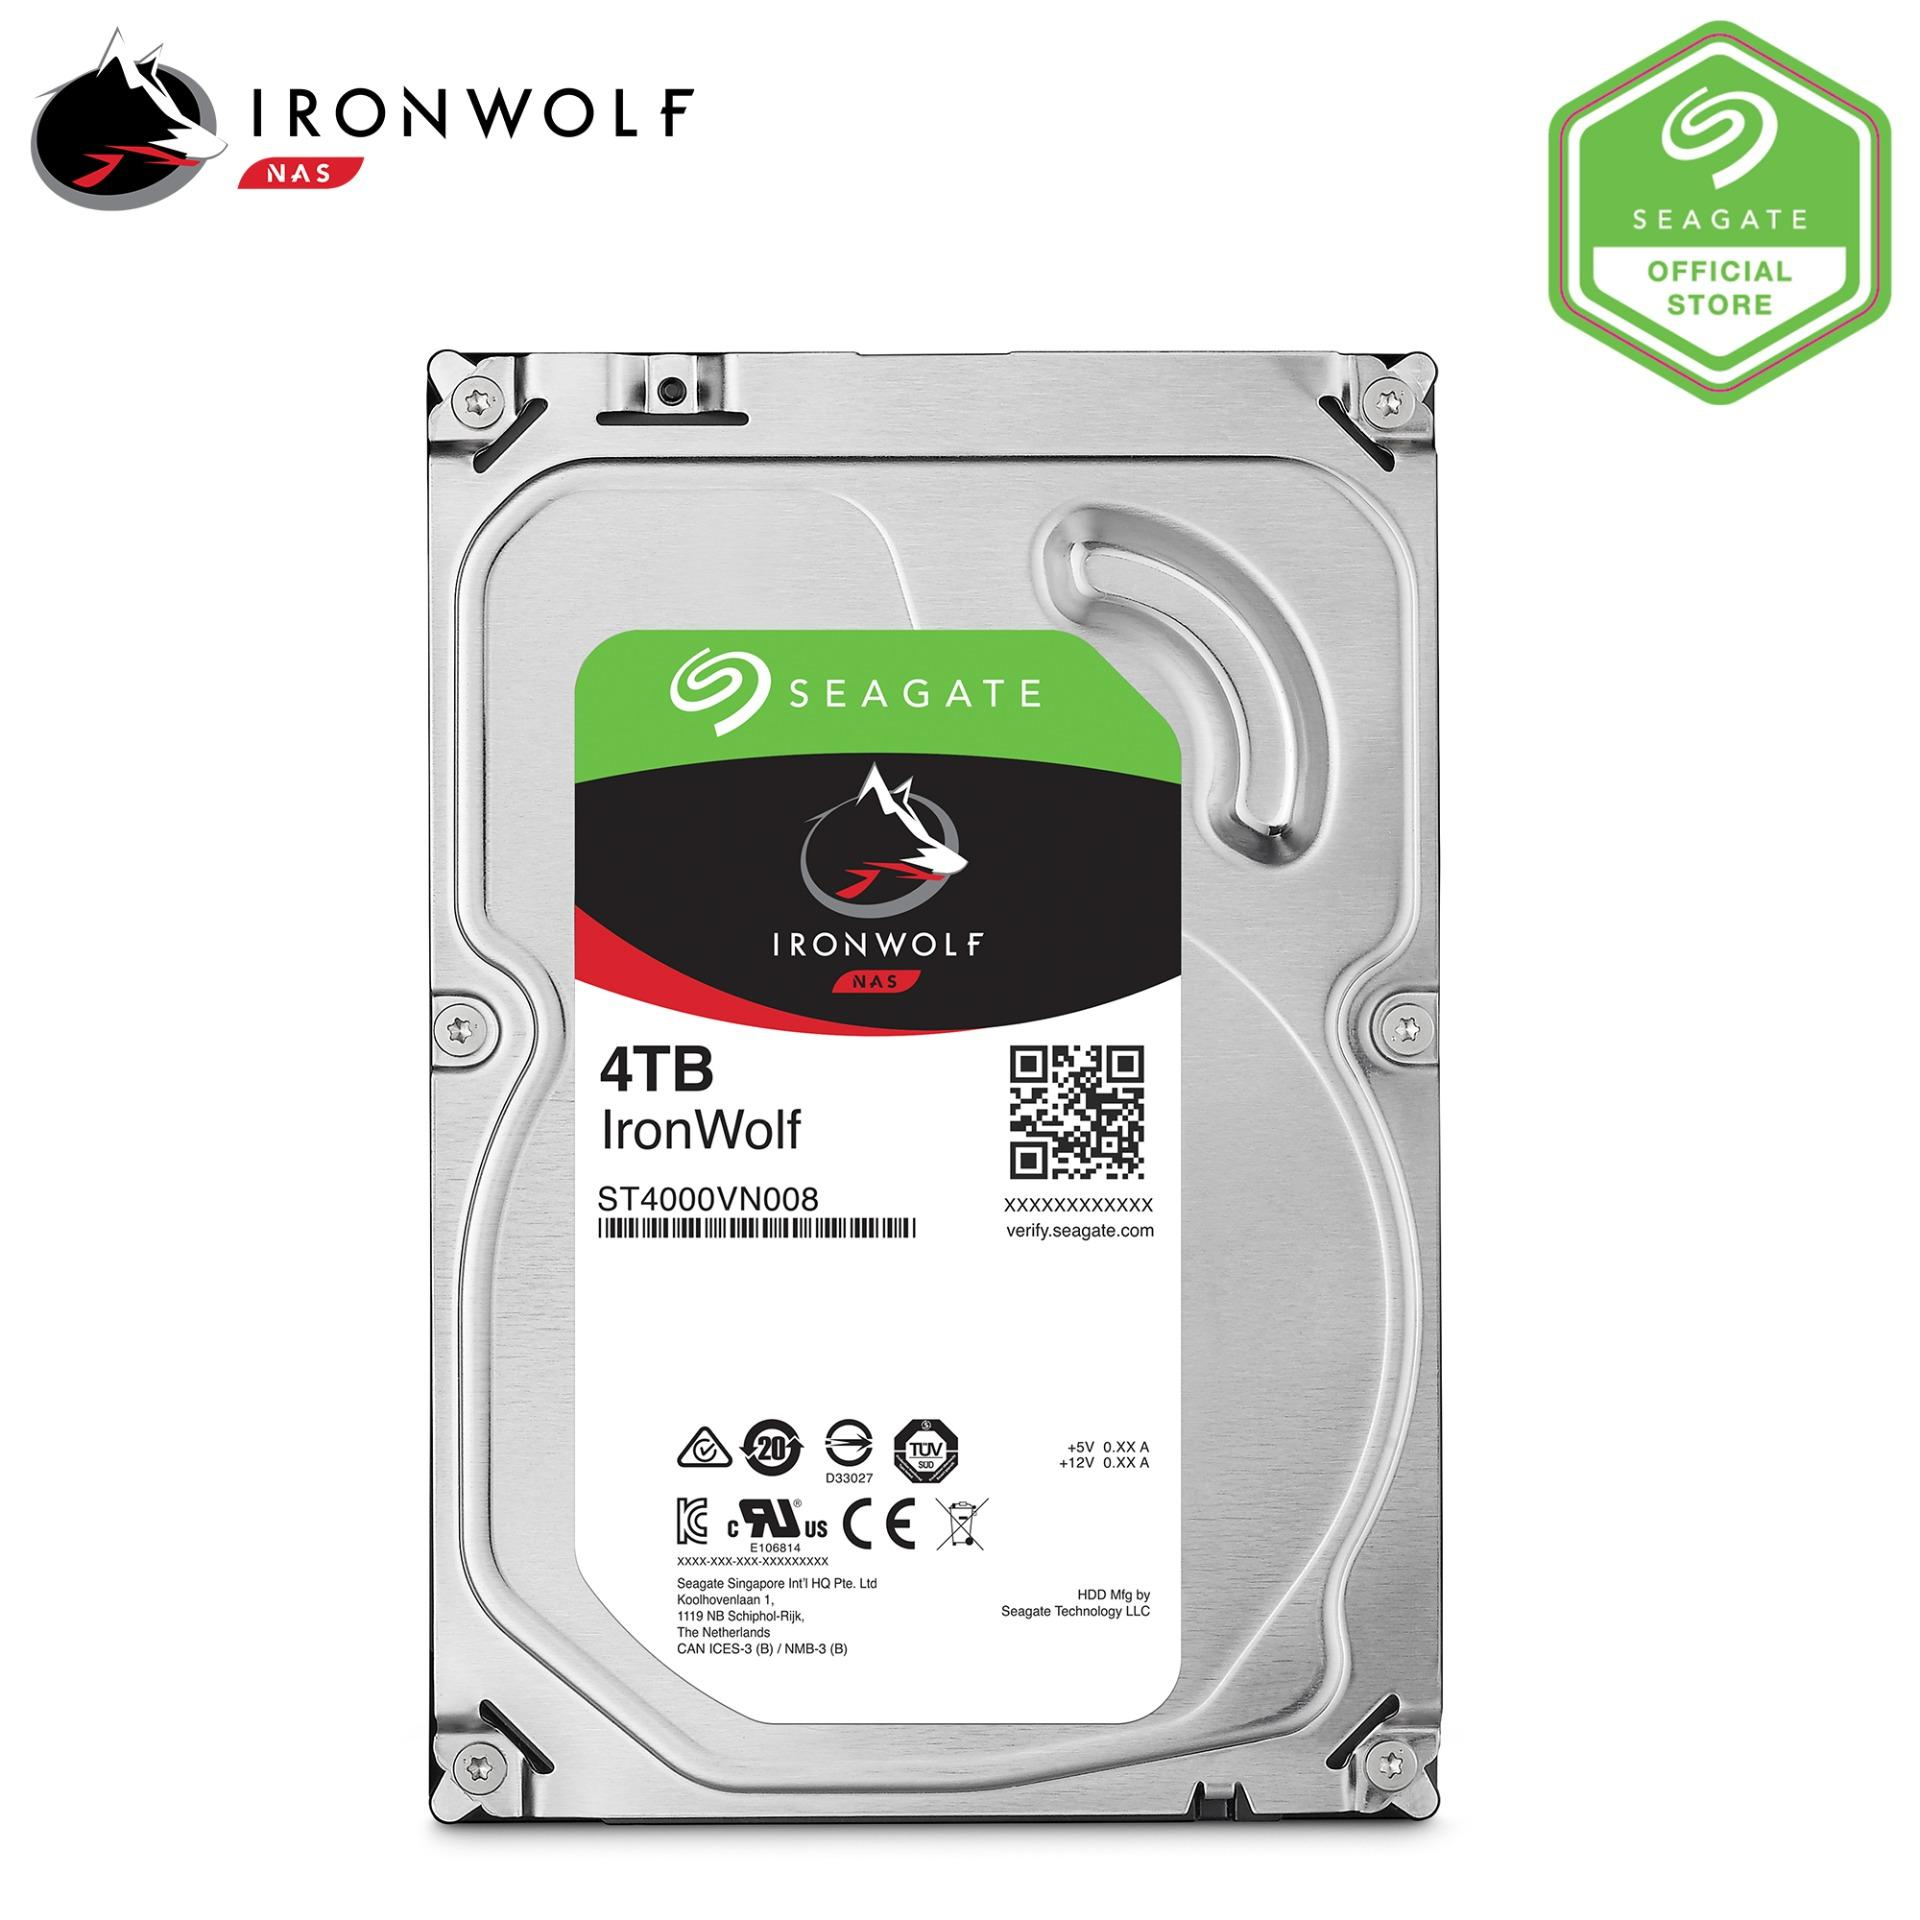 Sale Seagate Ironwolf Nas 4Tb 3 5 Hard Disk Seagate Branded